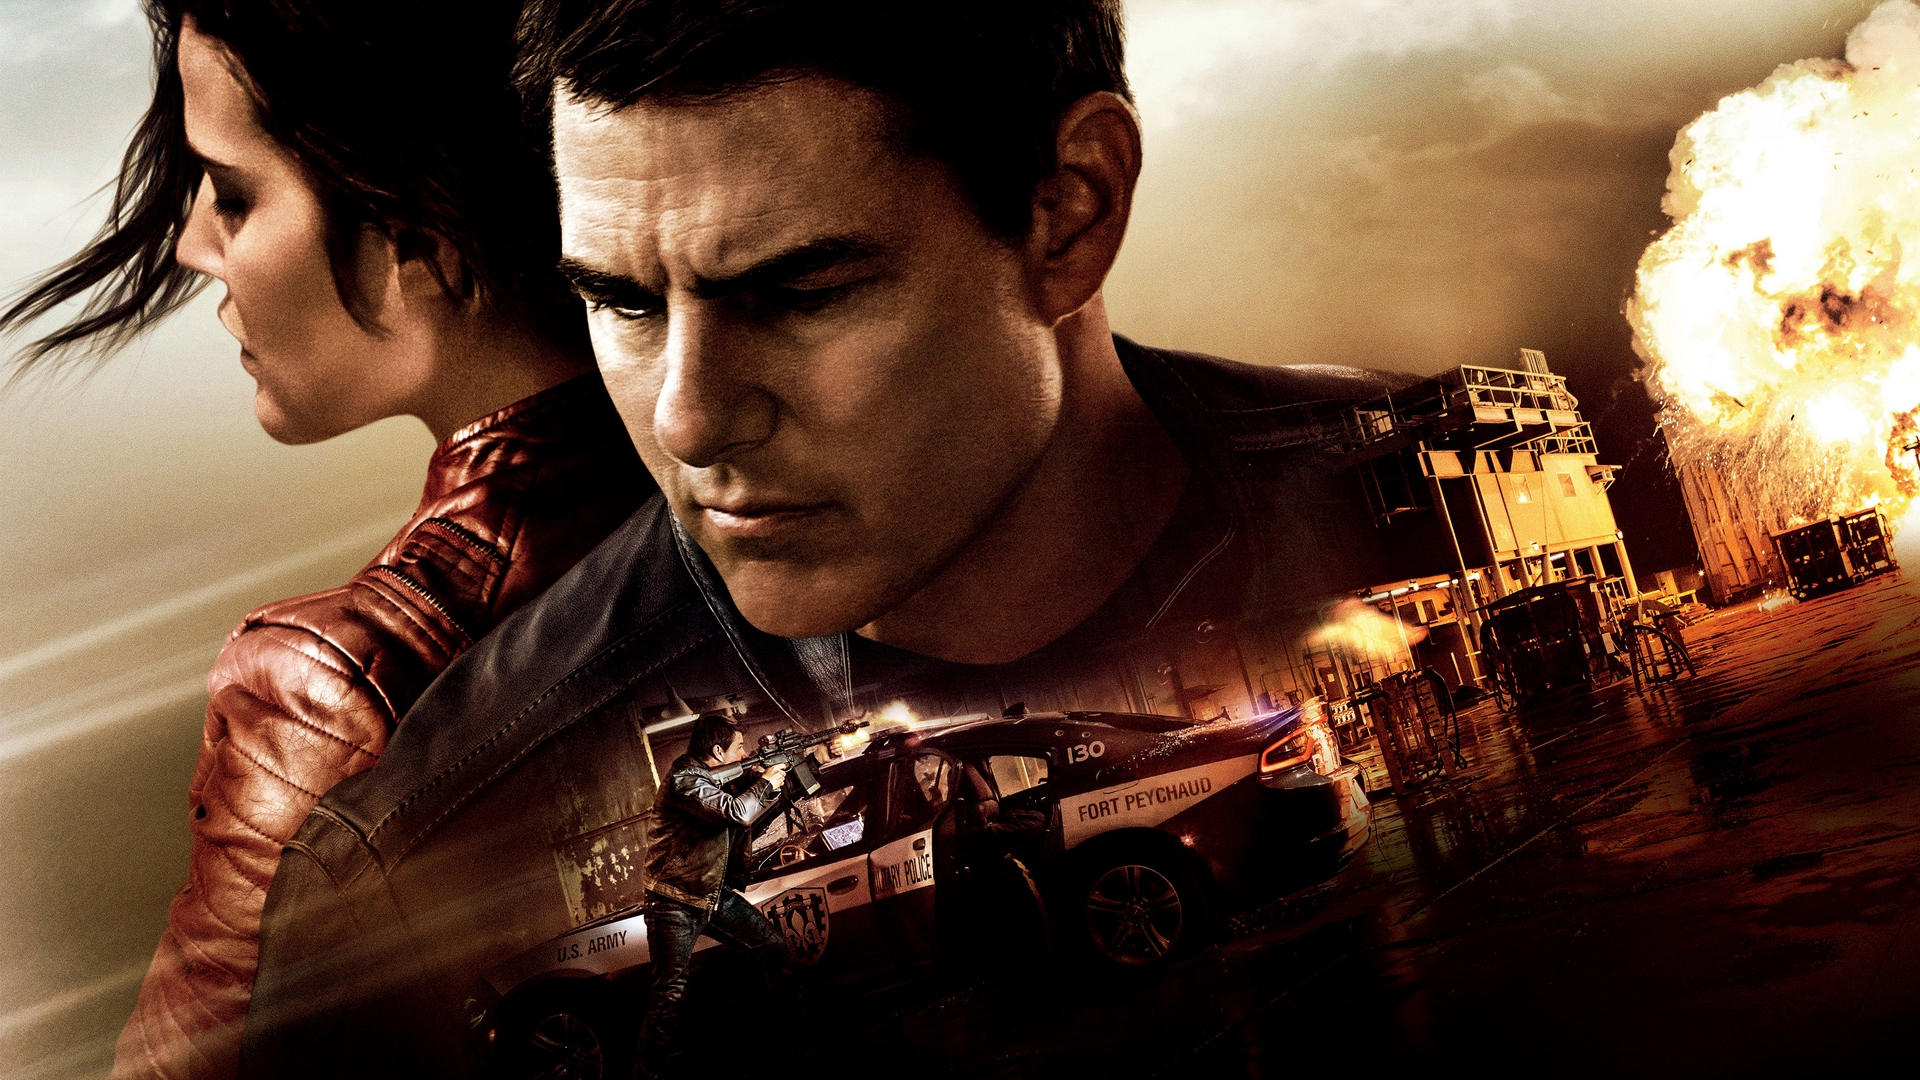 Download wallpaper 1920x1080 jack reacher never go back tom 1920x1080